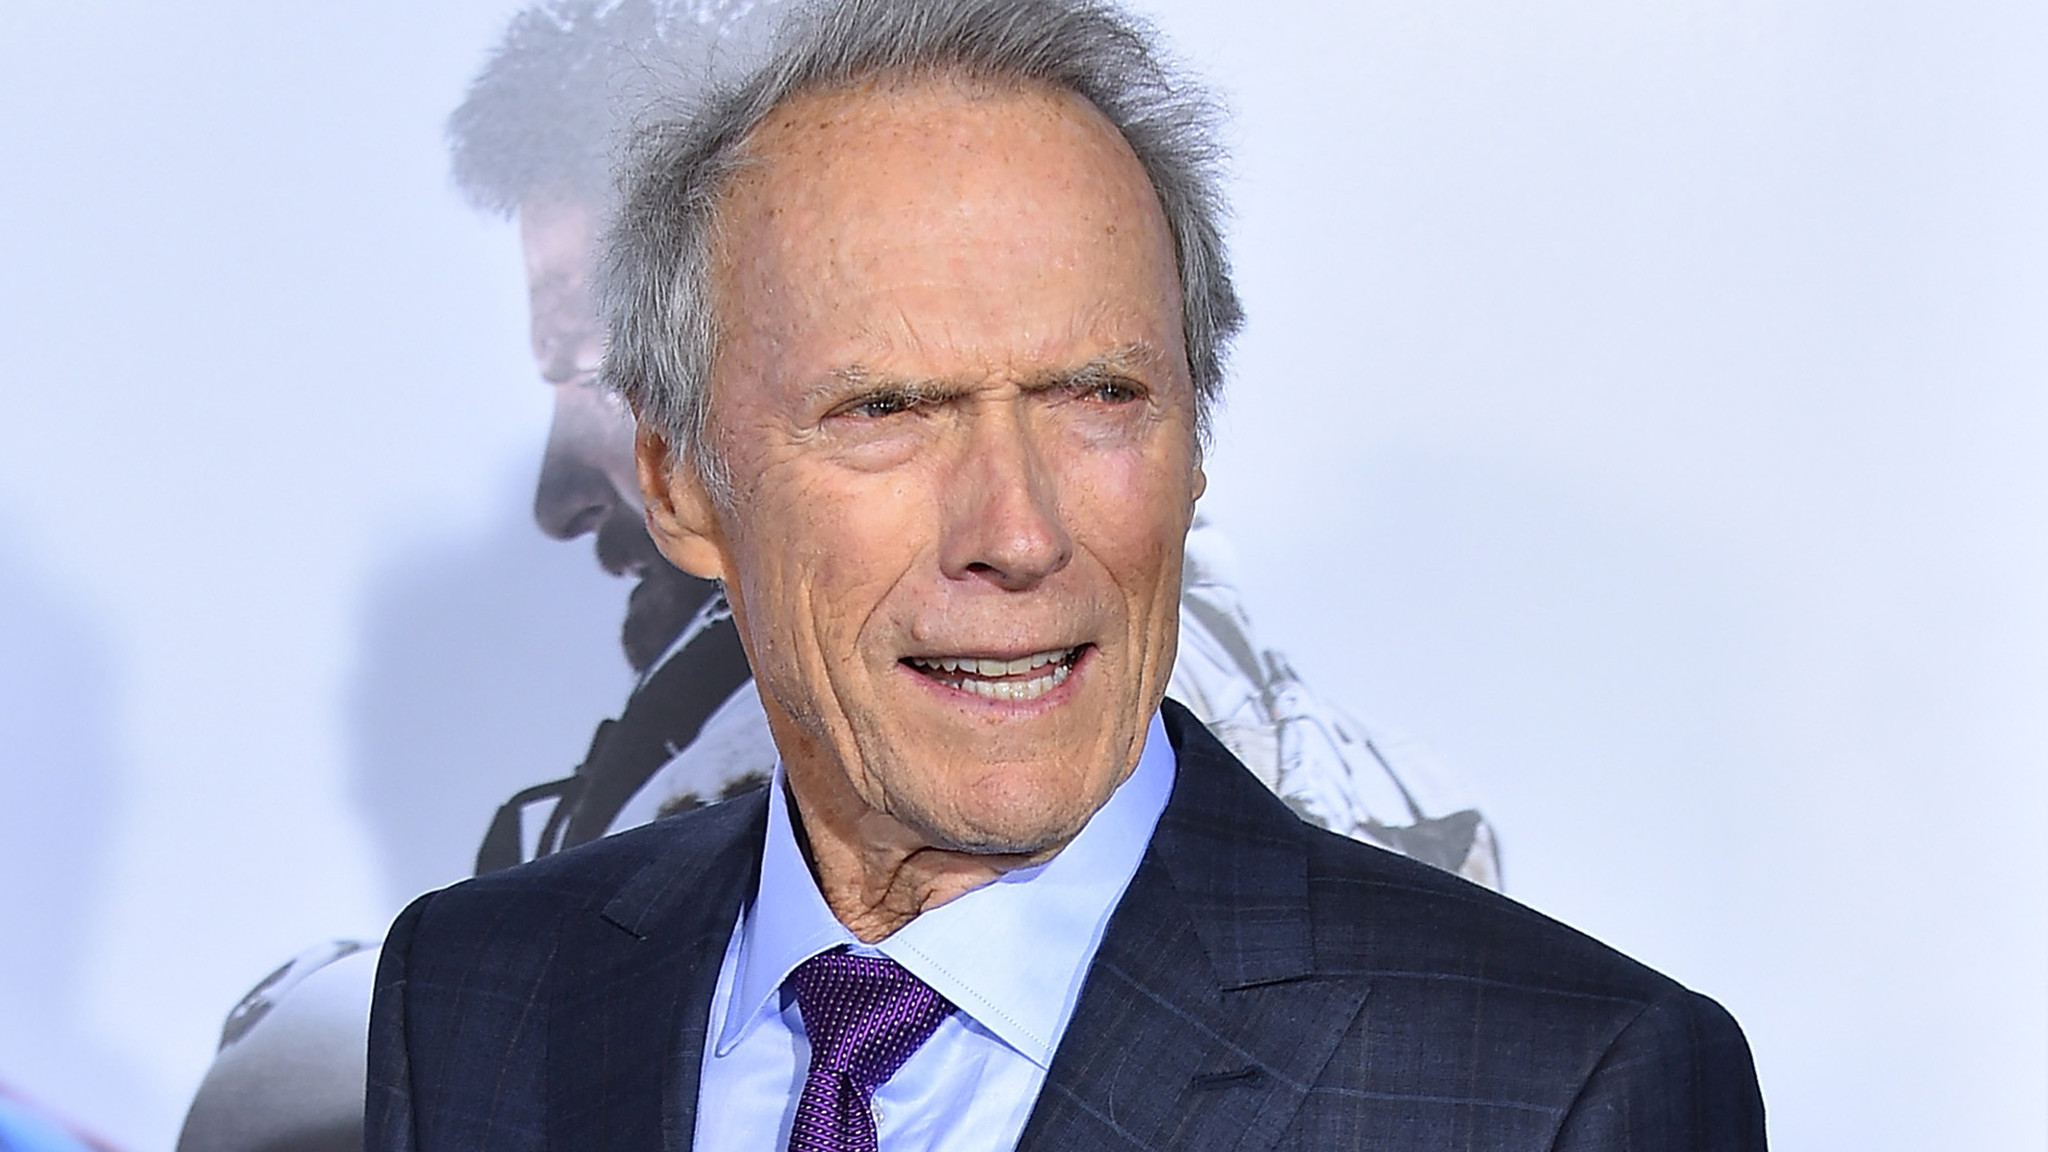 Clint eastwood s orce from dina eastwood is final la times